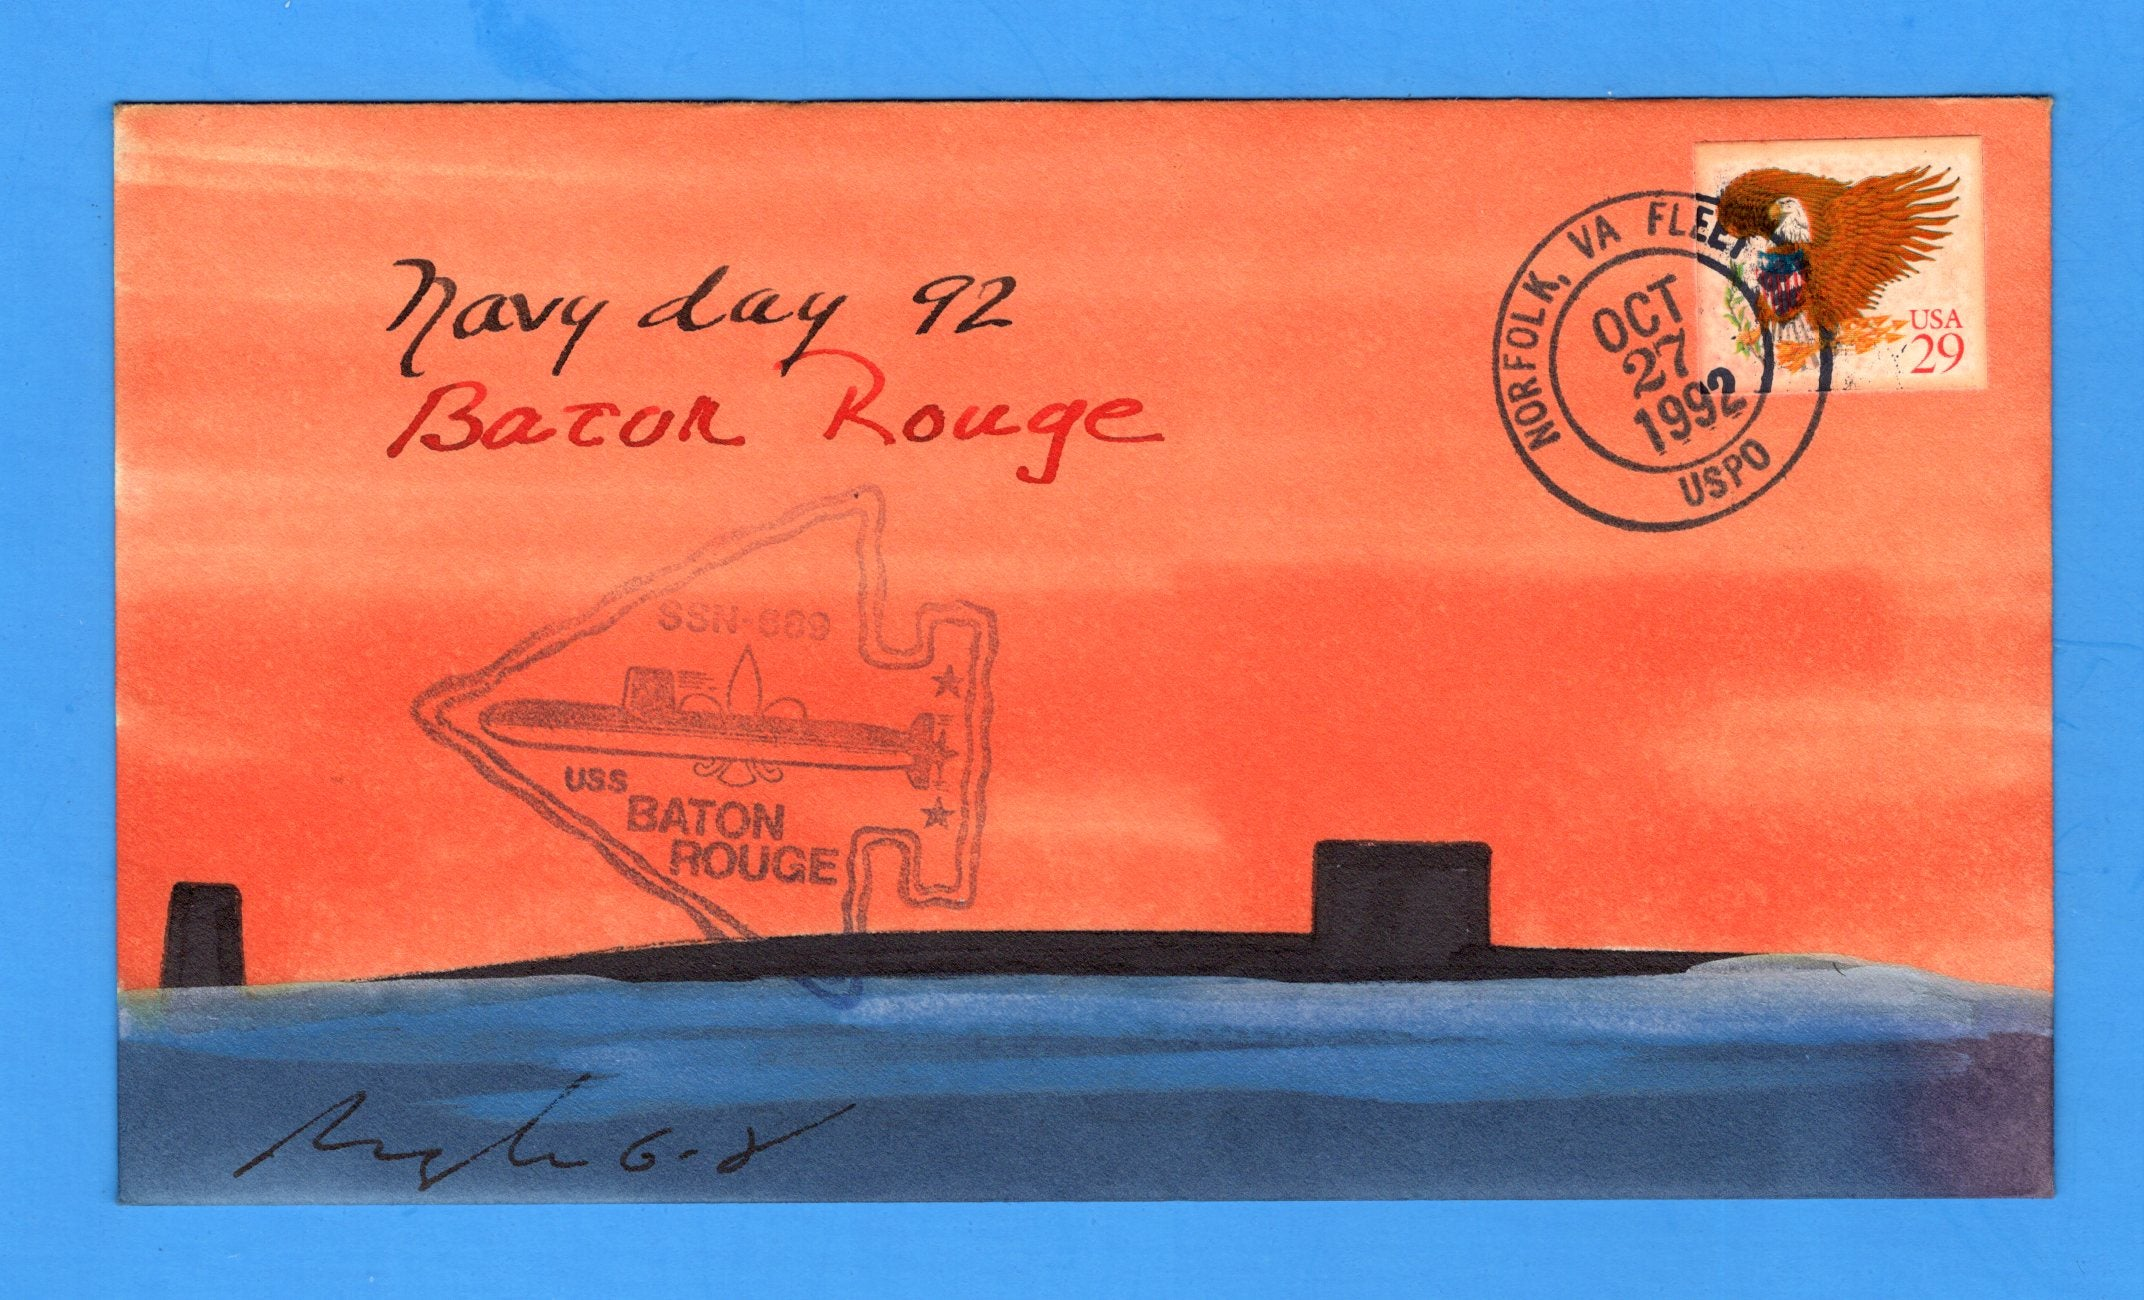 USS Baton Rouge SSN-689 Navy Day October 27, 1992 - Rogak Hand Painted Cachet